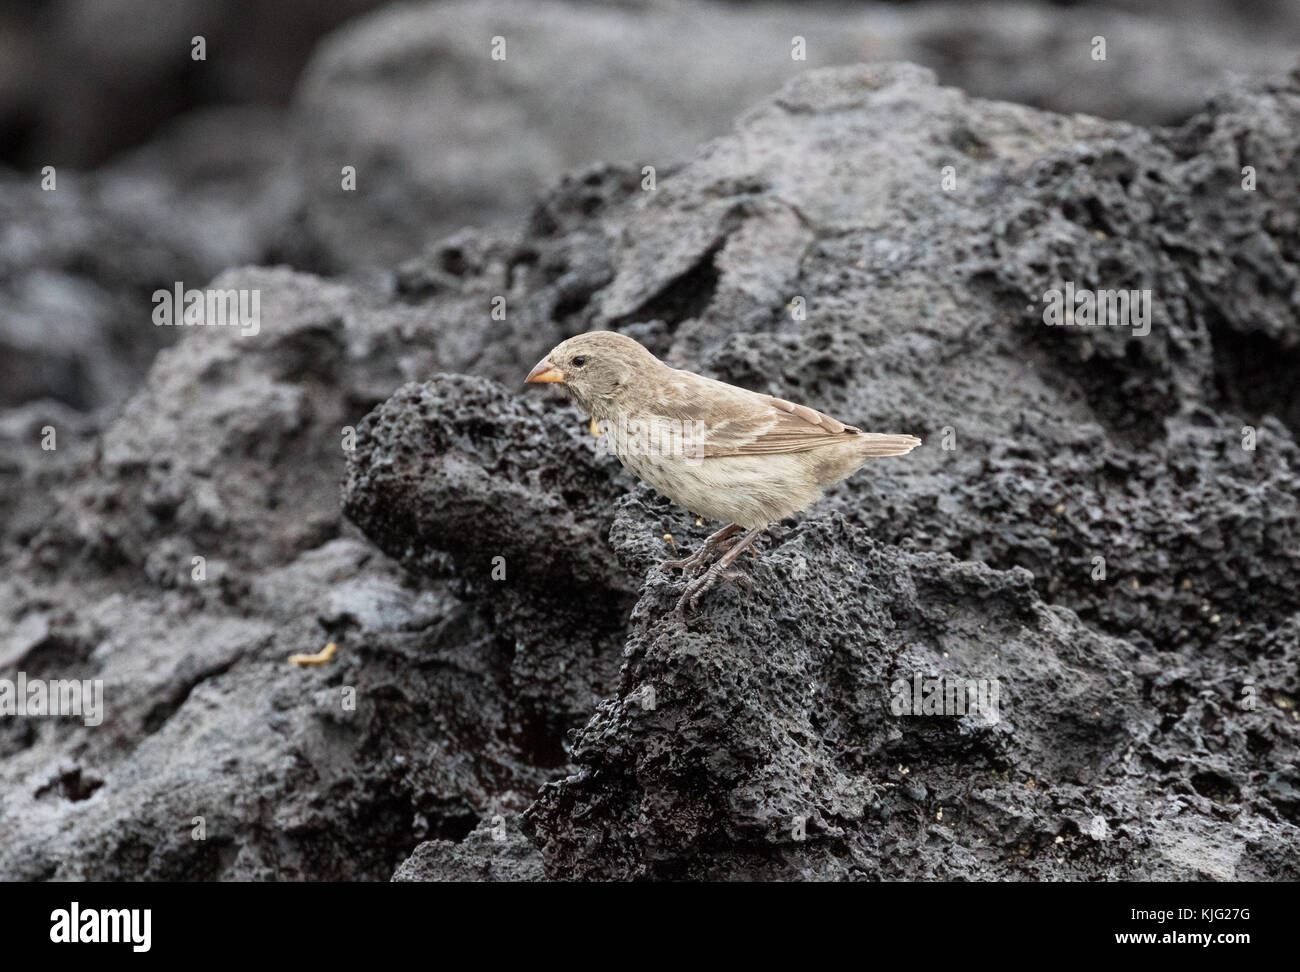 Darwins Finches - a Small Ground Finch, ( Geospiza fuliginosa ), on lava rock, Espanola Island, Galapagos Islands - Stock Image